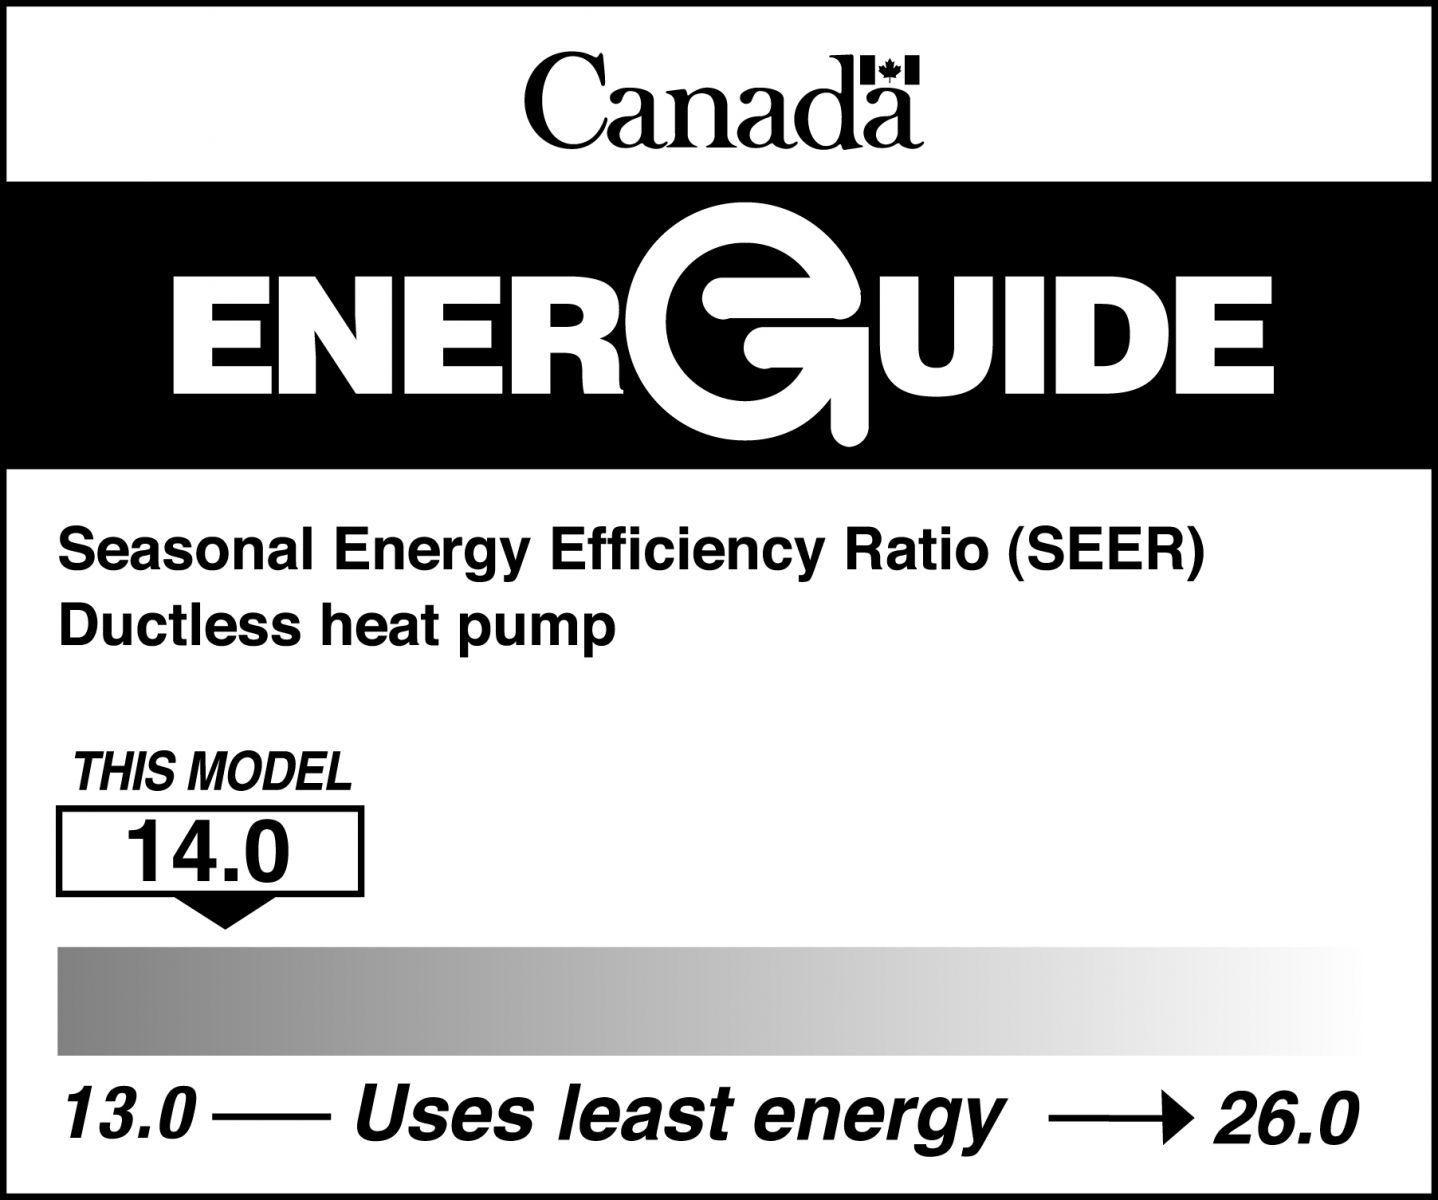 EnerGuide label for ductless central air conditioners